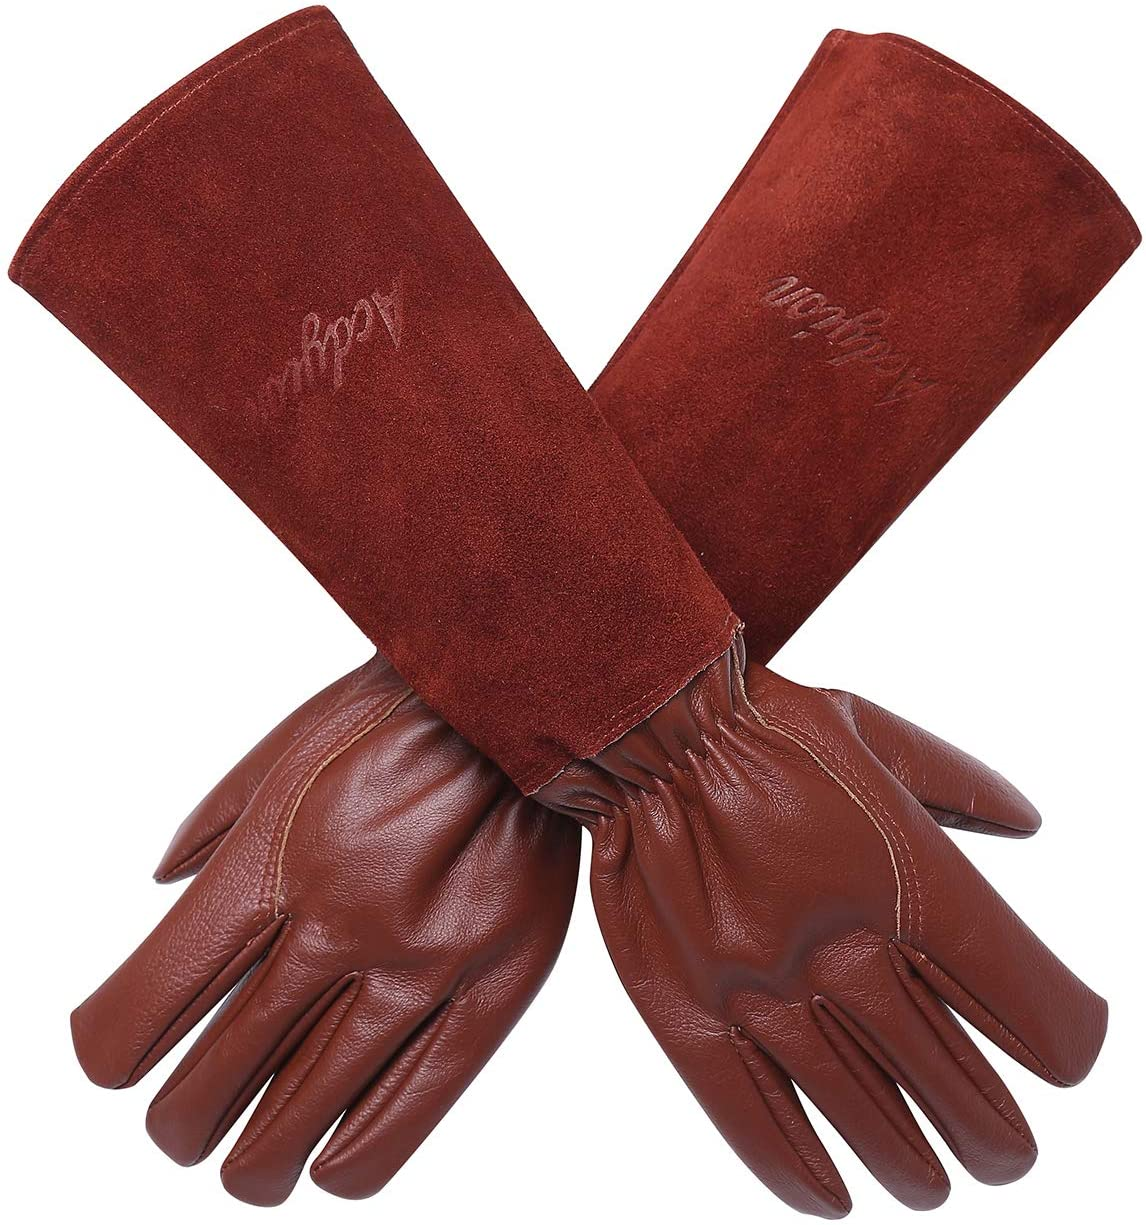 Acdyion Gardening Gloves for Women/Men Rose Pruning Thorn & Cut Proof Long Forearm Protection Gauntlet, Durable Thick Cowhide Leather Work Garden Gloves (Medium, Brown)